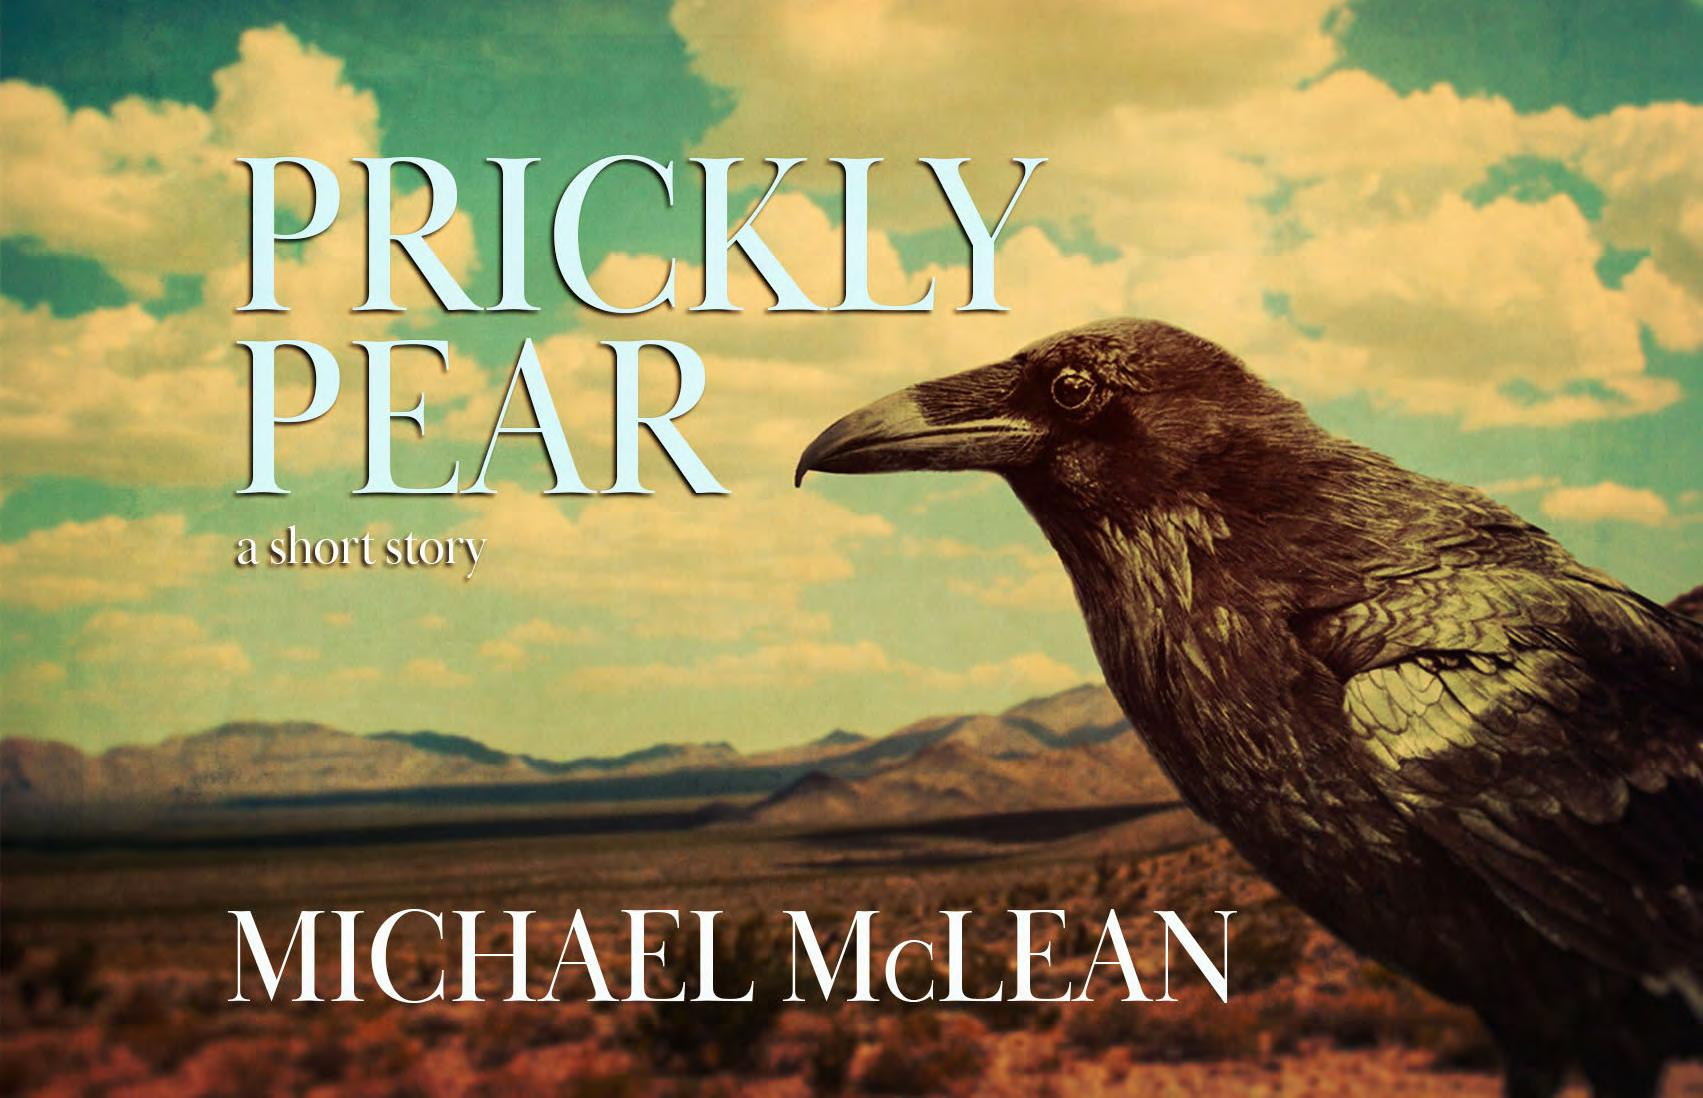 Page 118 of Prickly Pear by Michael McLean